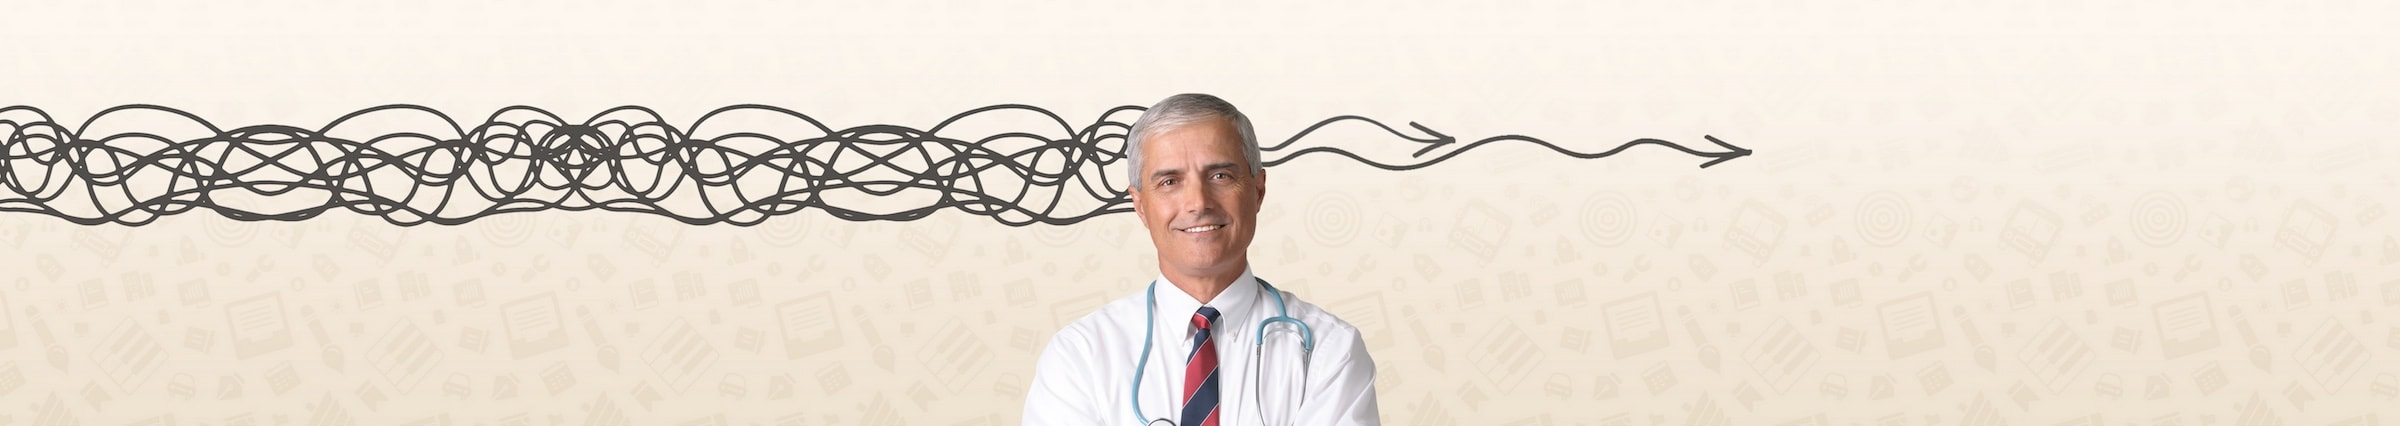 man standing in front of graphic background with the appearance of a squiggly line entering the left of his head and two gently wavy arrows emerging from the right hand side